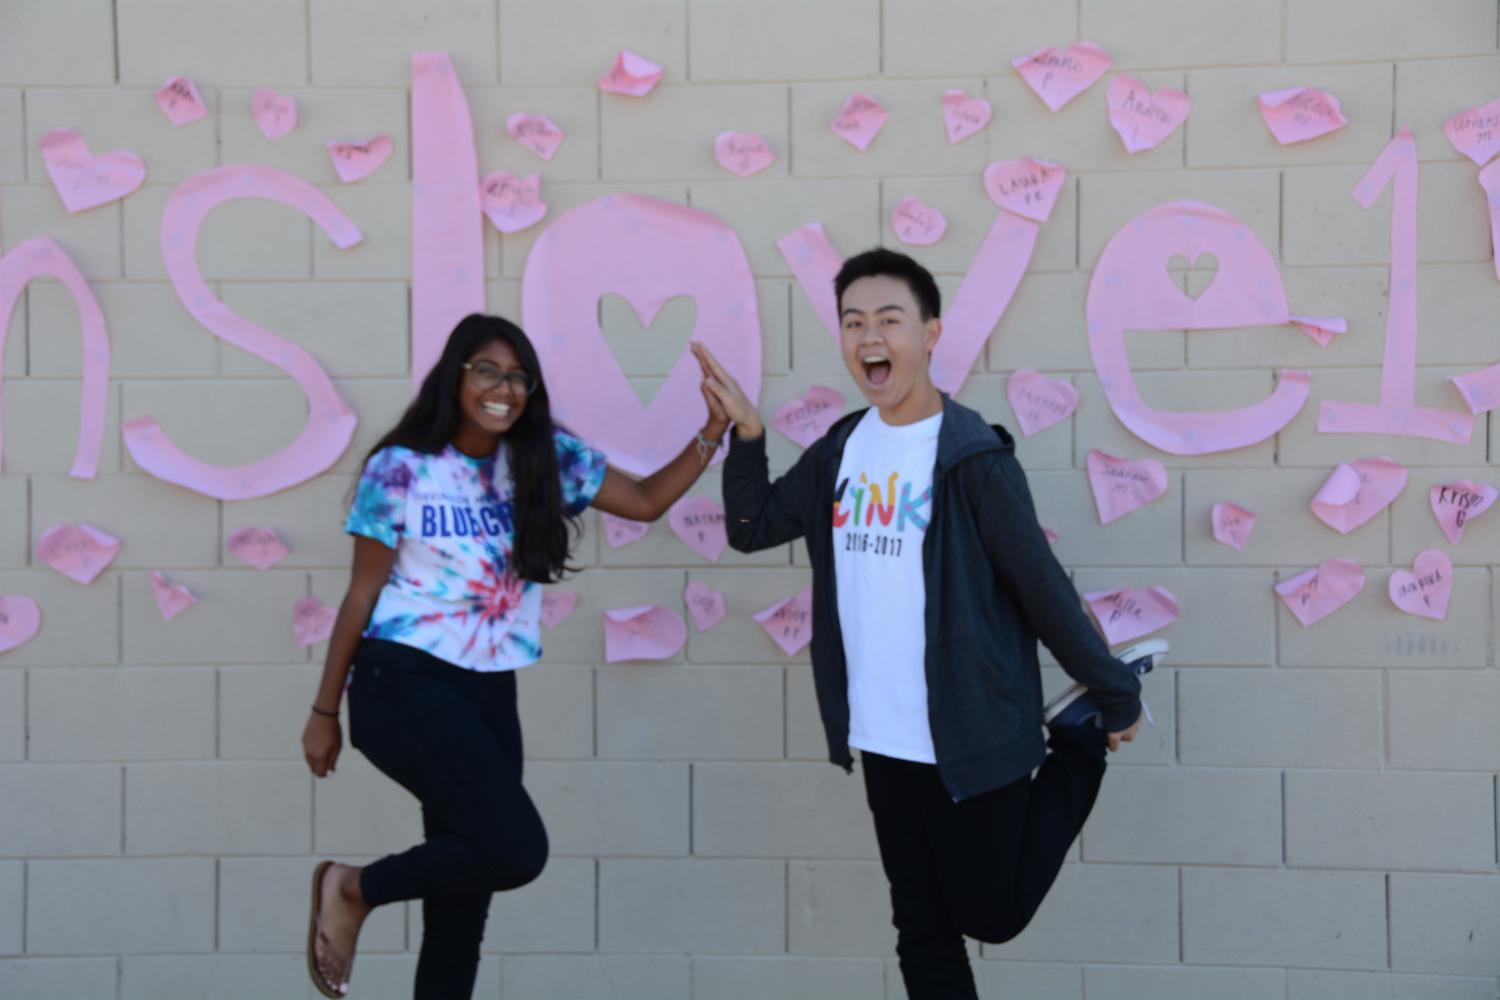 Juniors Sruti Nagam and Derick Nguyen pose in front of the #ihslove16 sign outside of the small gym. (Vivian Hoang)